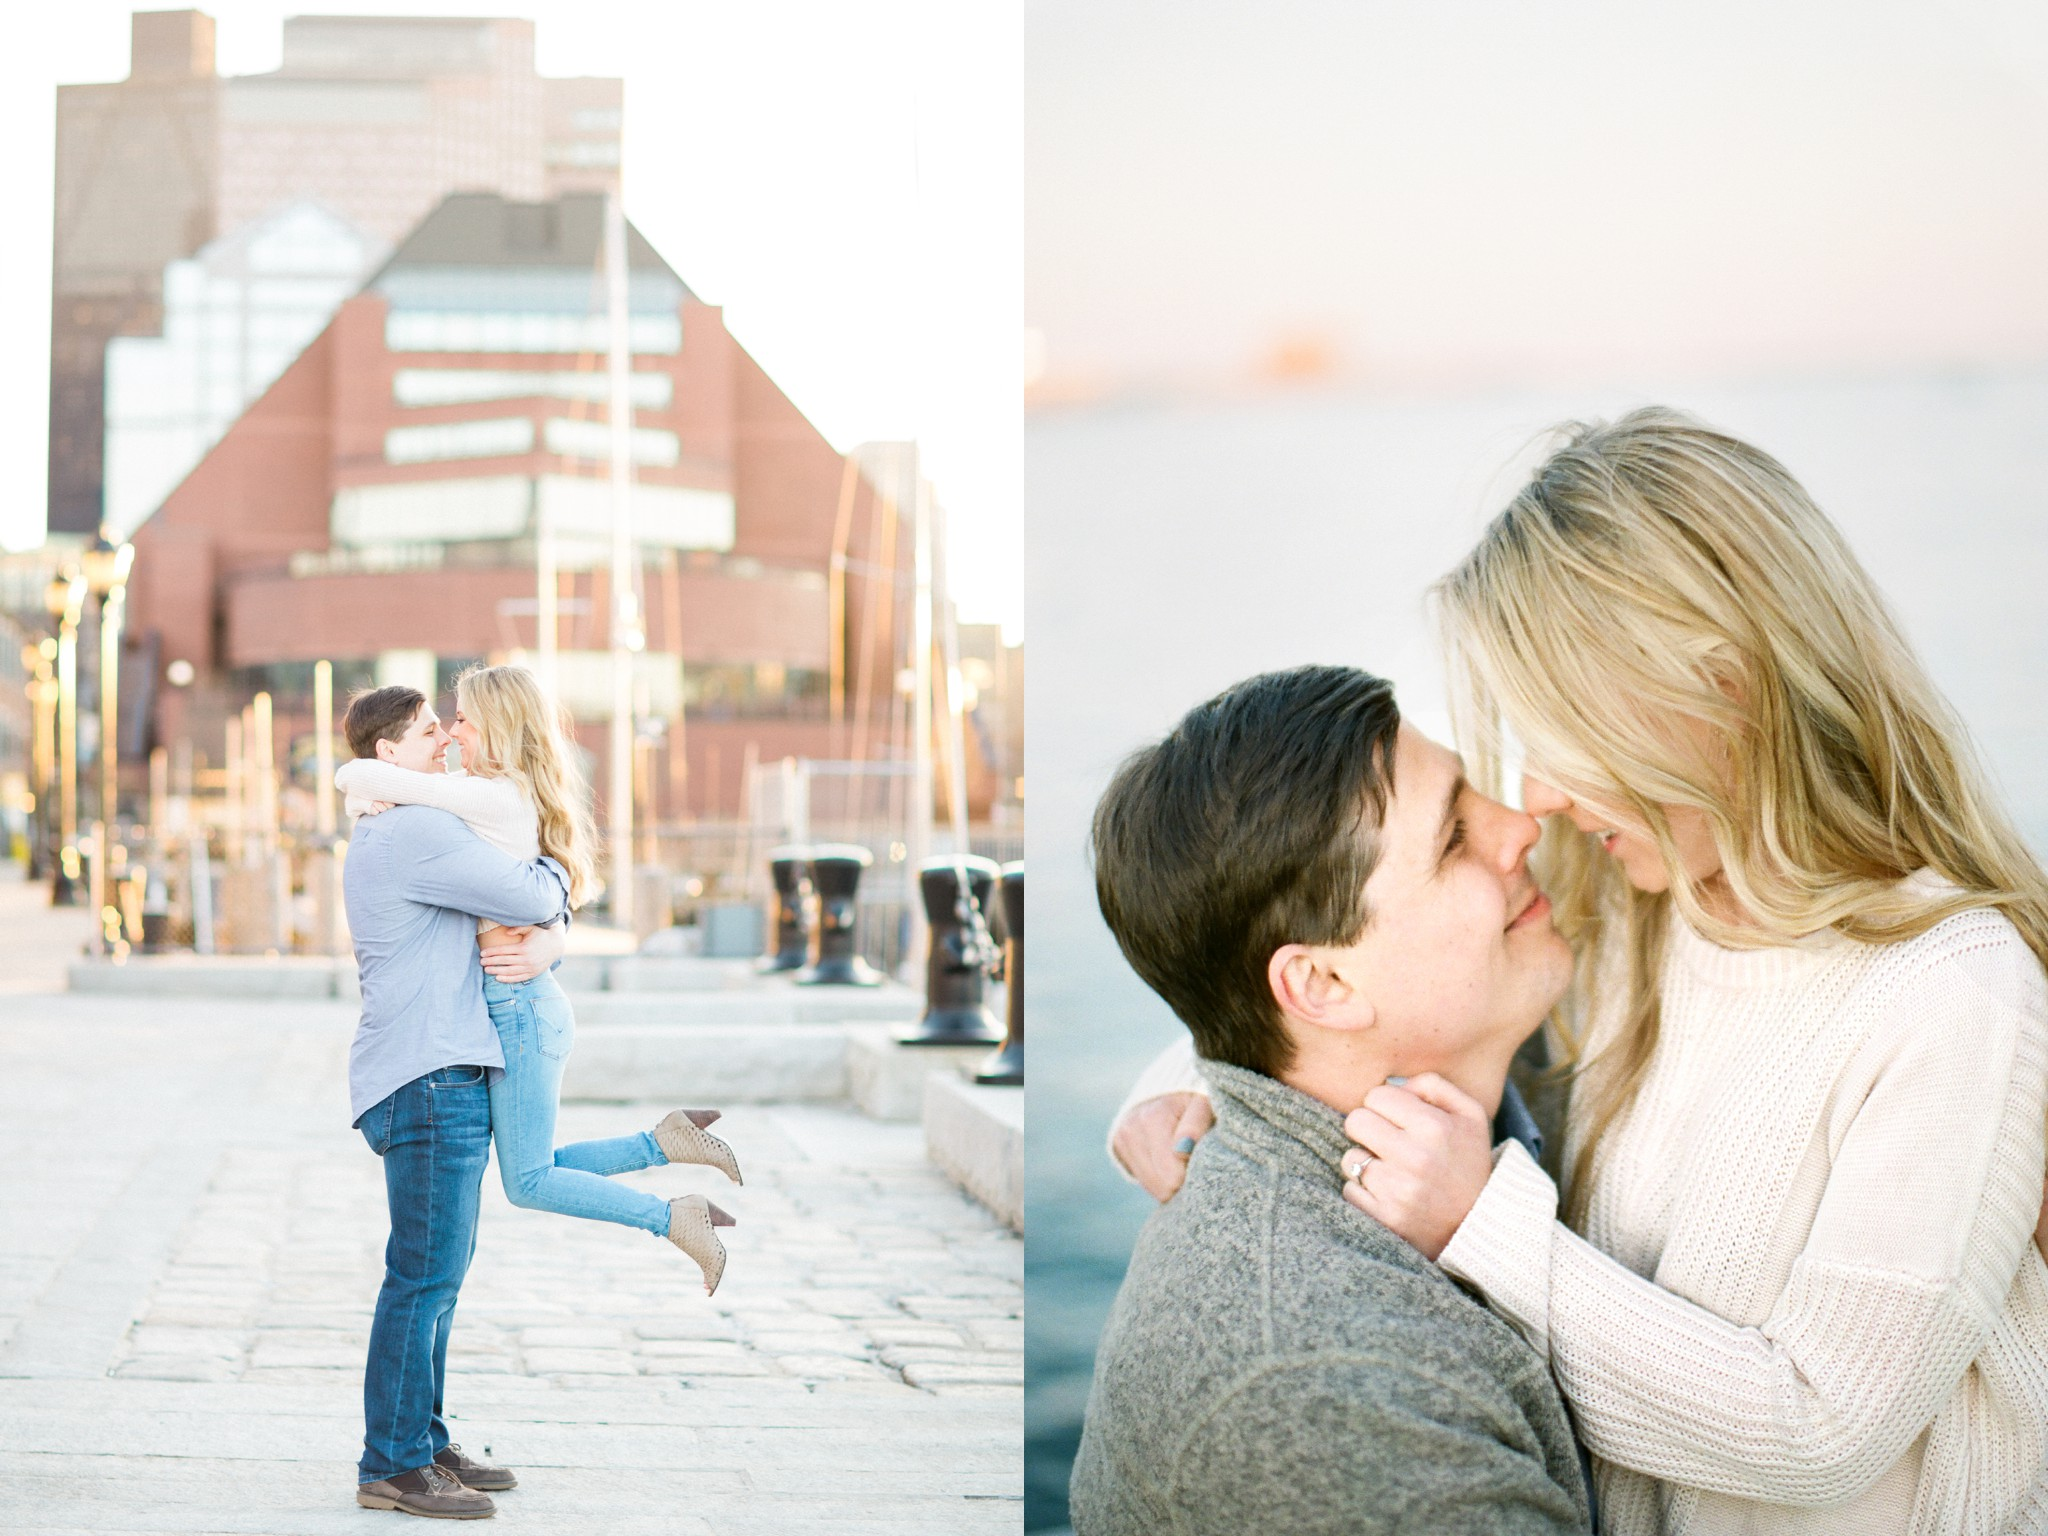 deborah_zoe_photography_engagement_session_0084.JPG